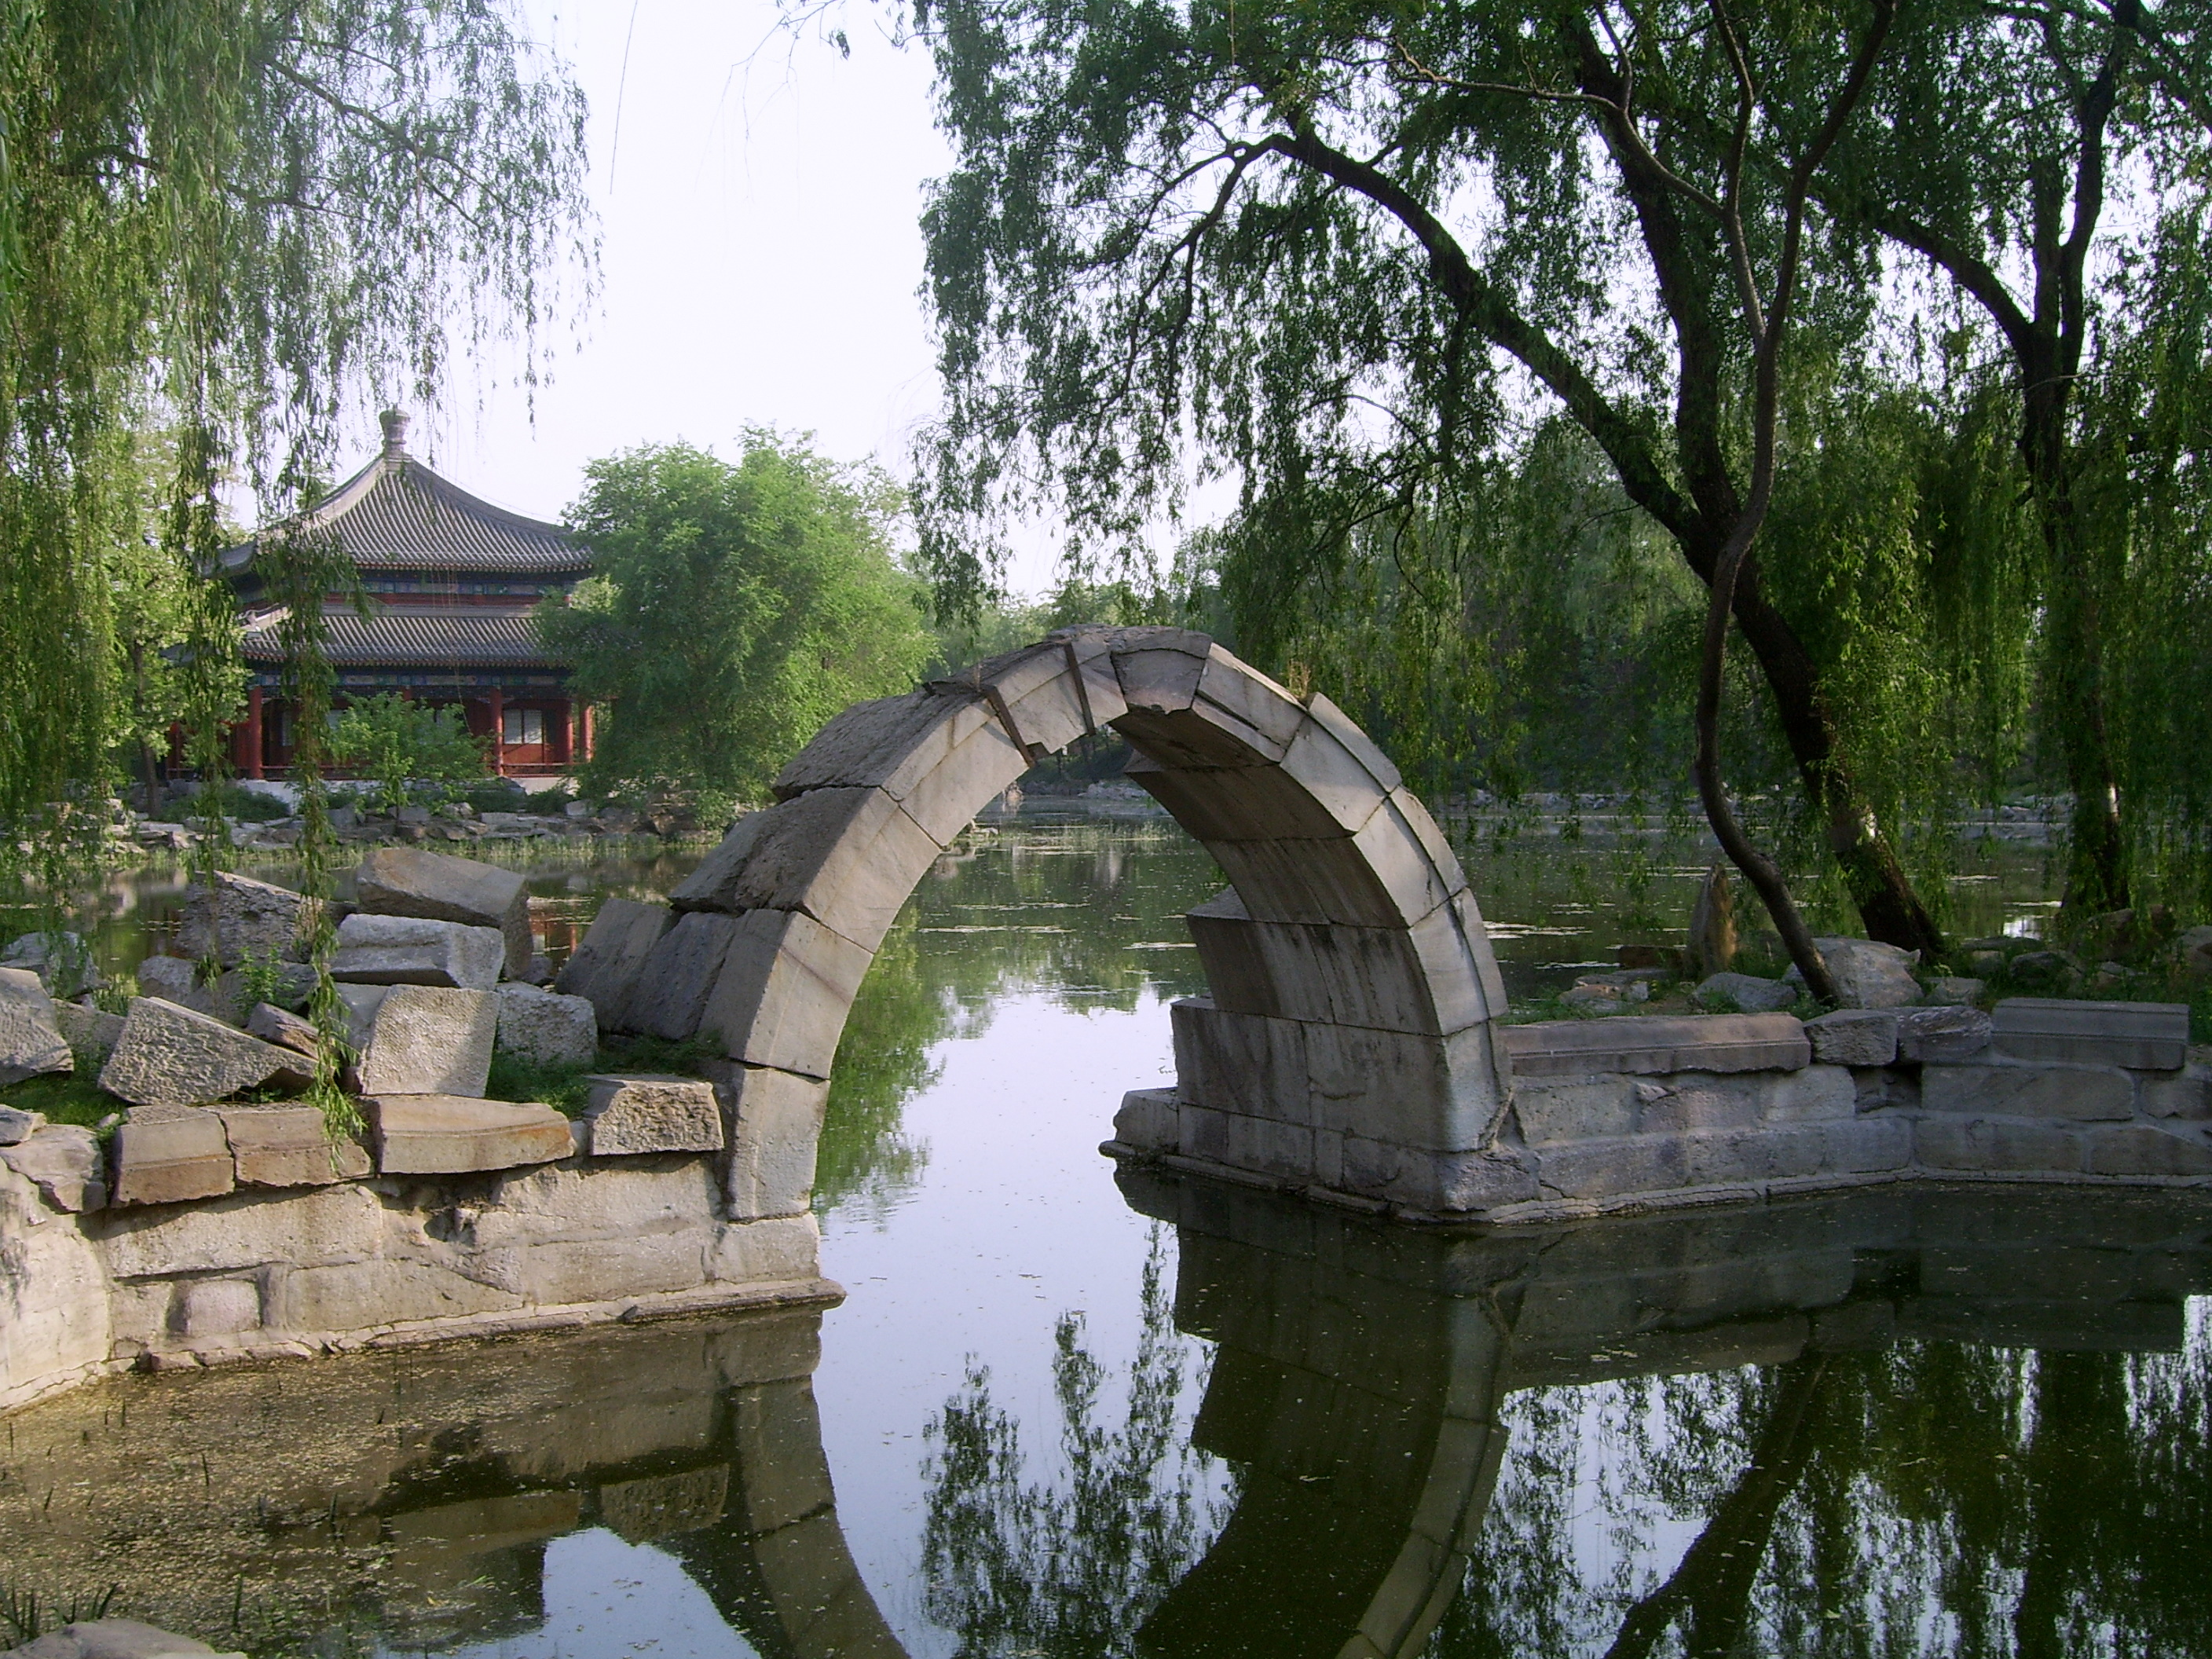 The pavilion and the stone arch are among the few remaining buildings in the Old Summer Palace